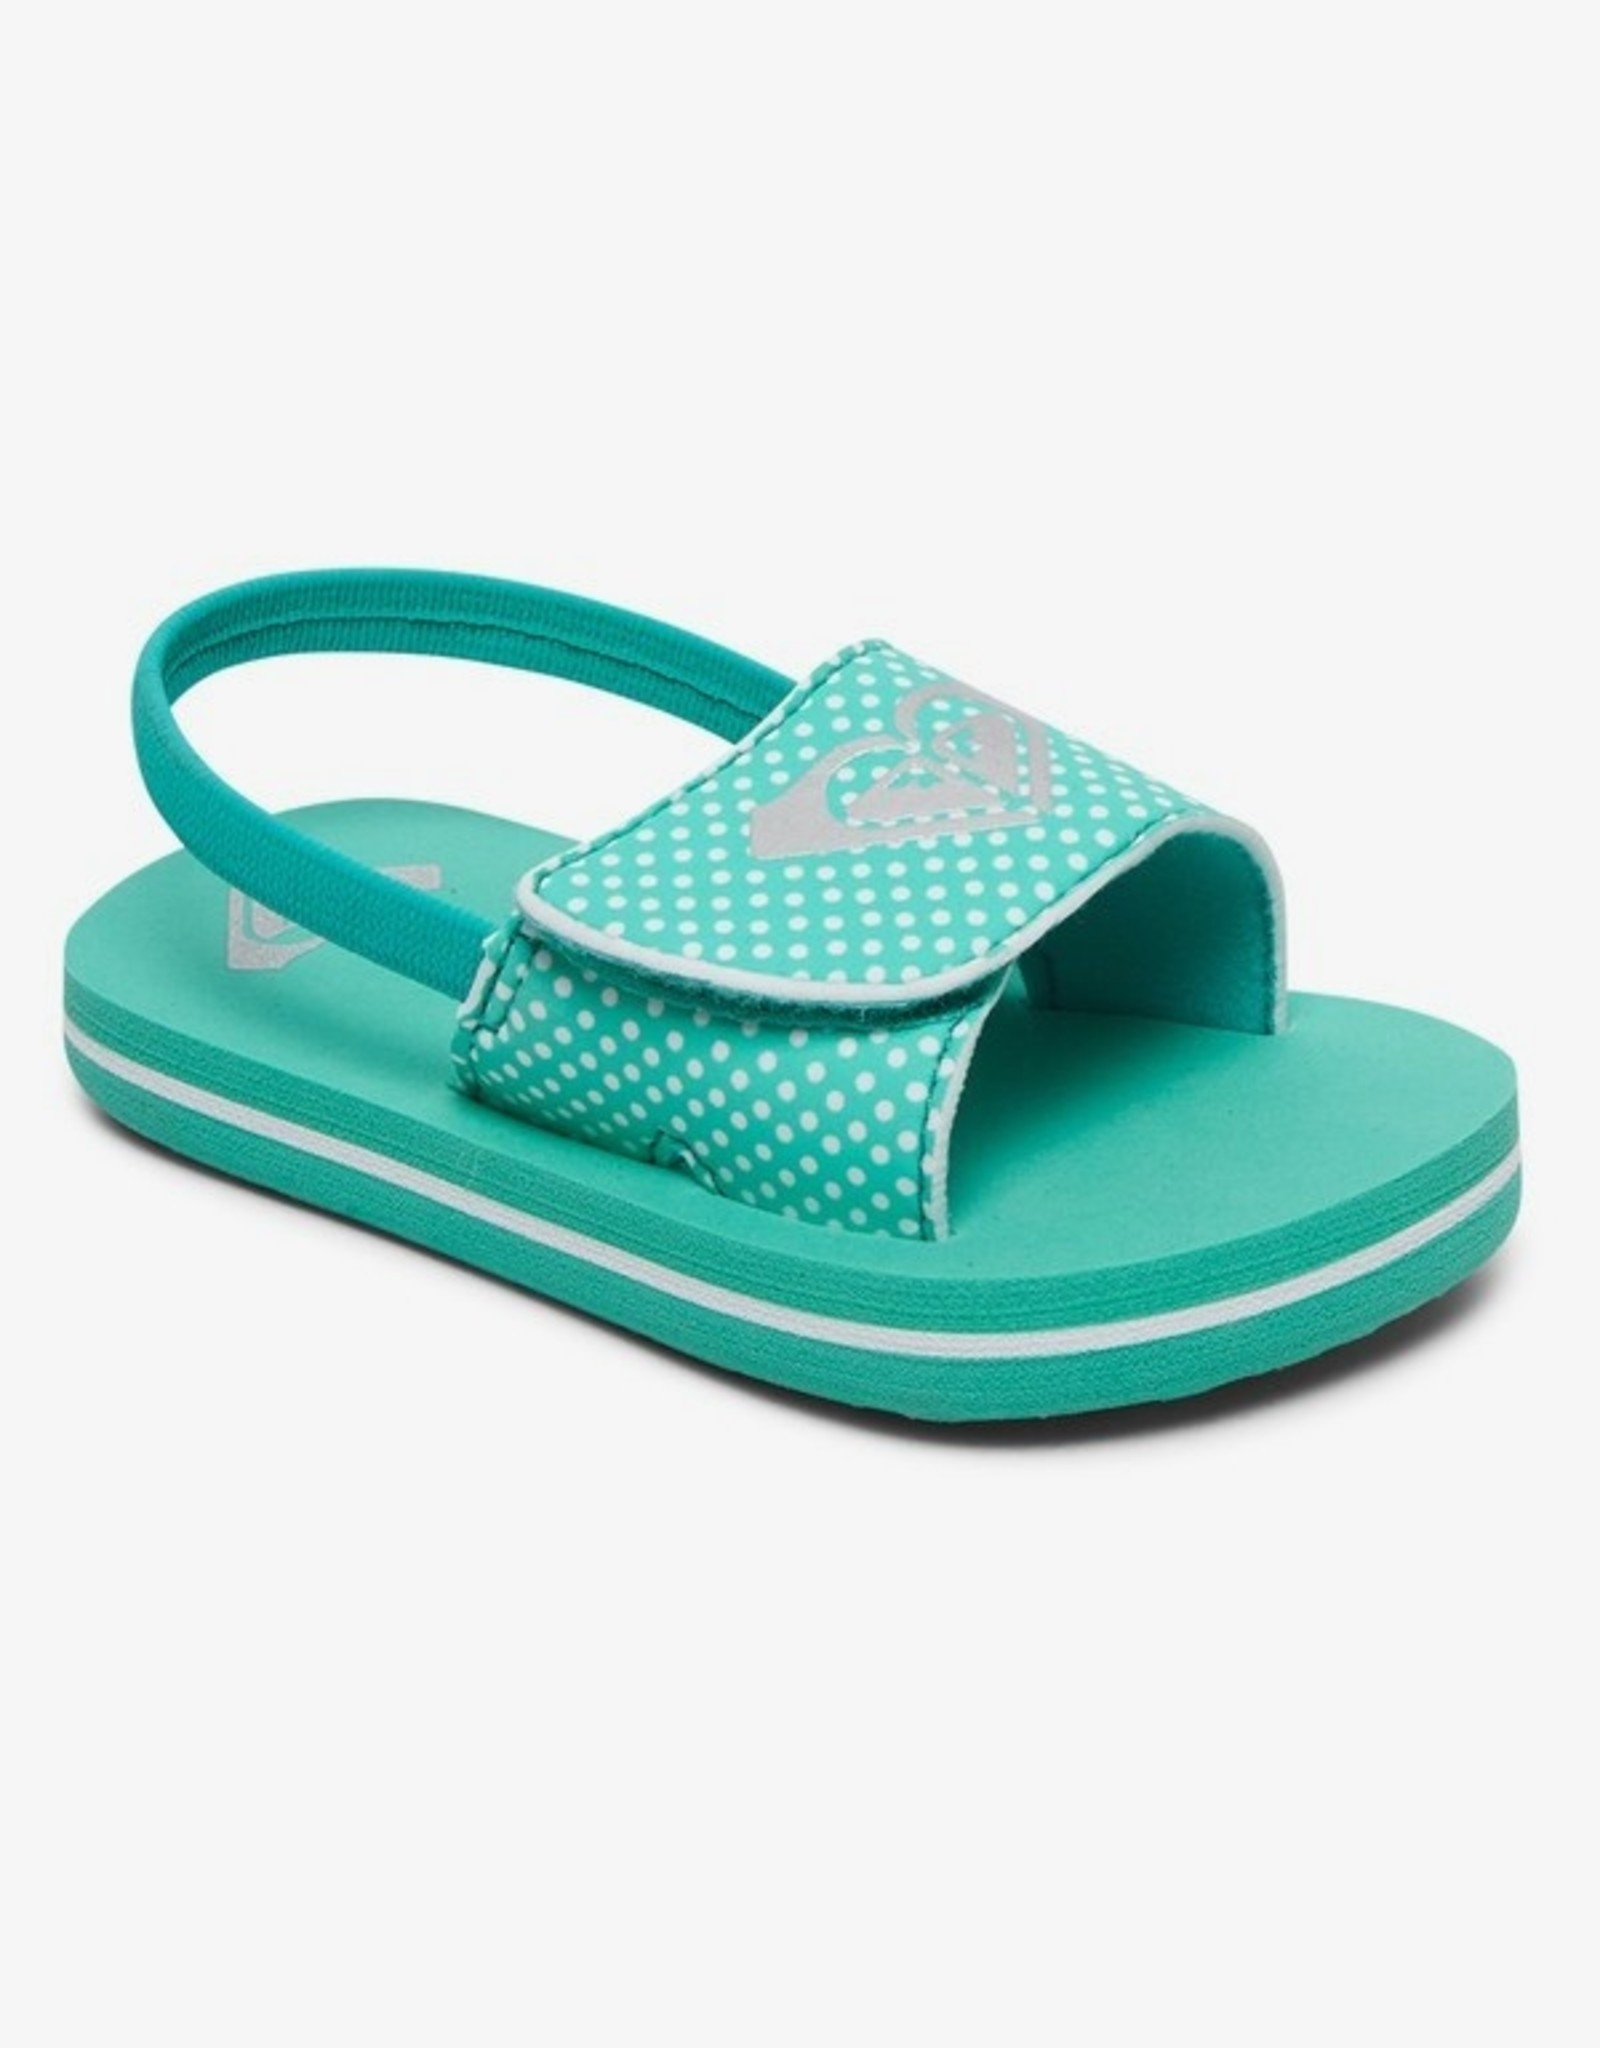 Roxy Finn Sandal - Lake Blue or Multi-Colour